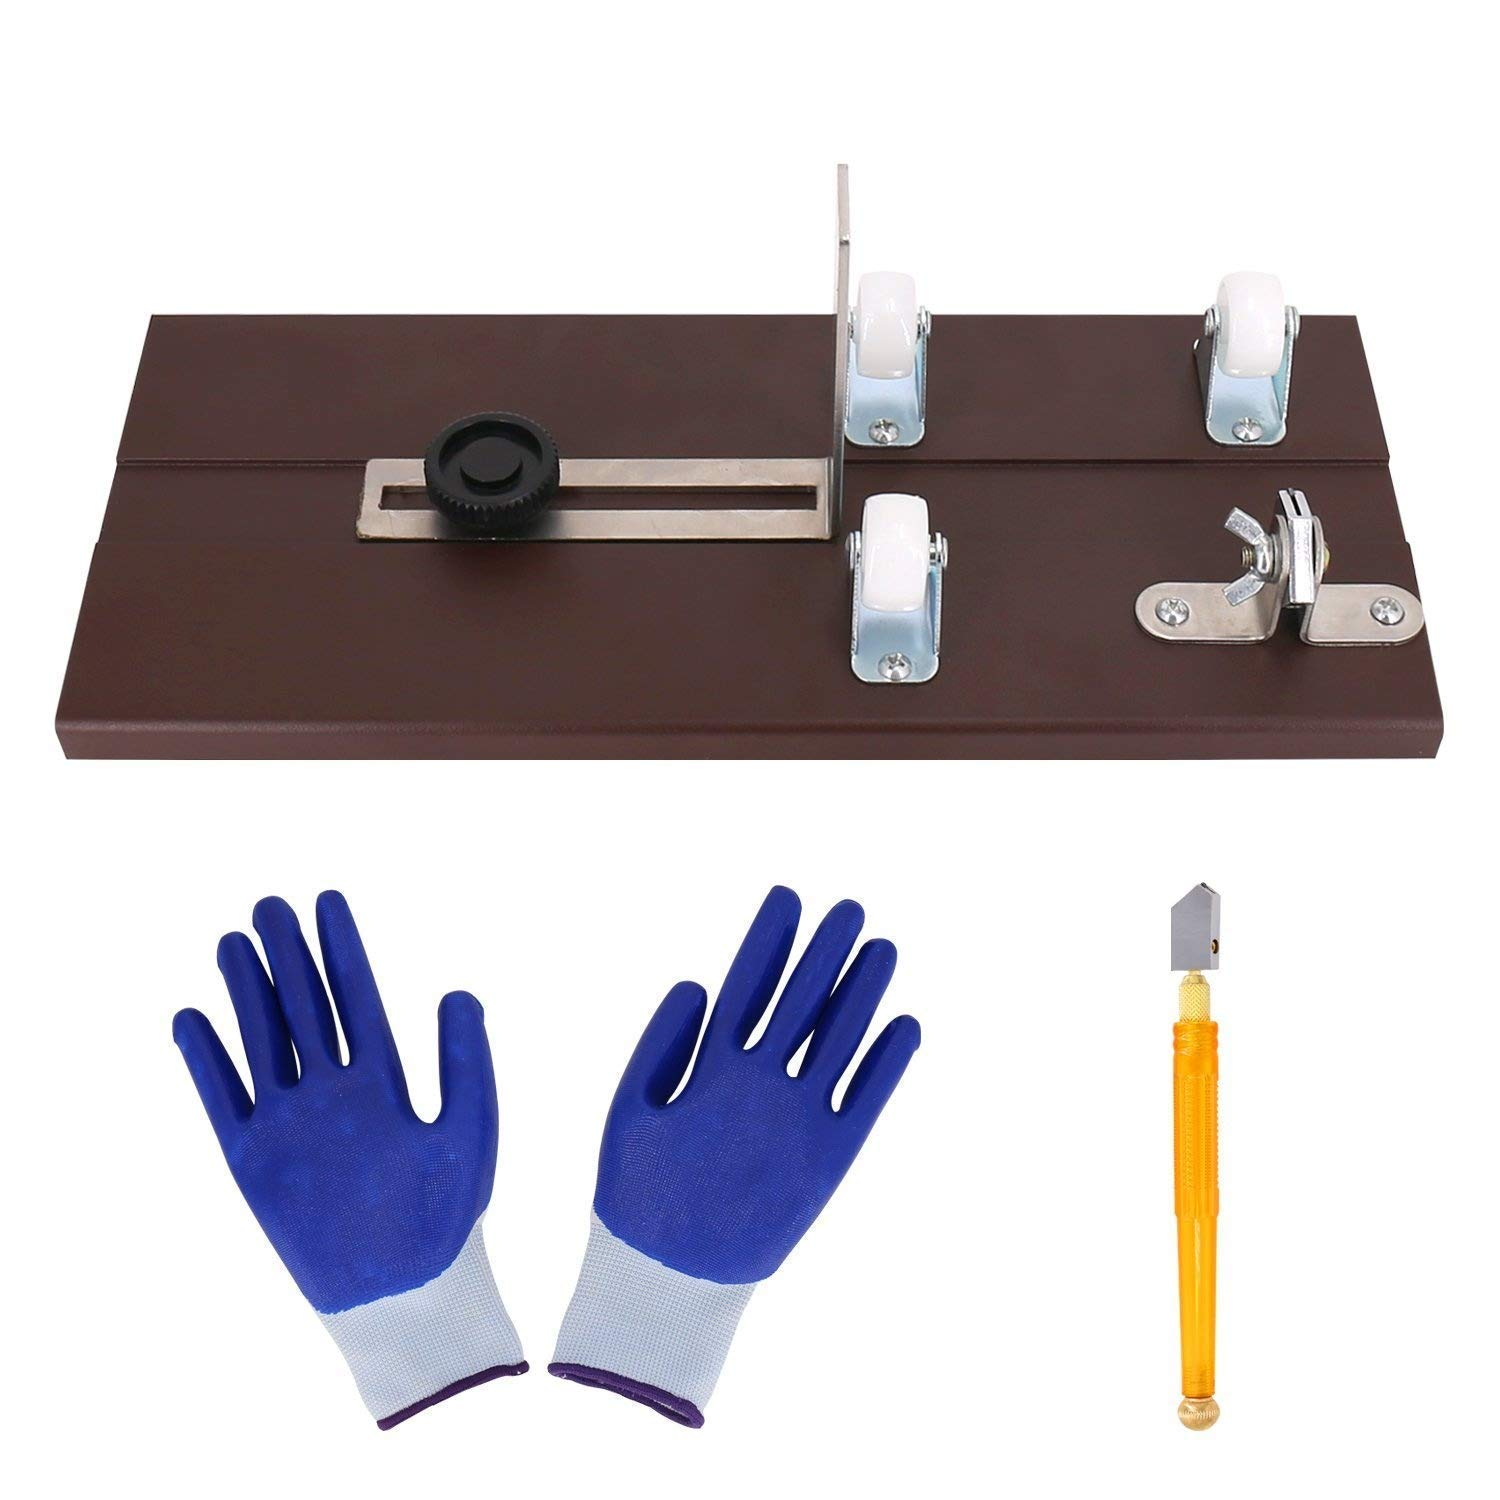 Glass Bottle Cutter, DIY Cutting Machine kit for Cutting Wine Bottles and Beer Bottles WAMTHUS